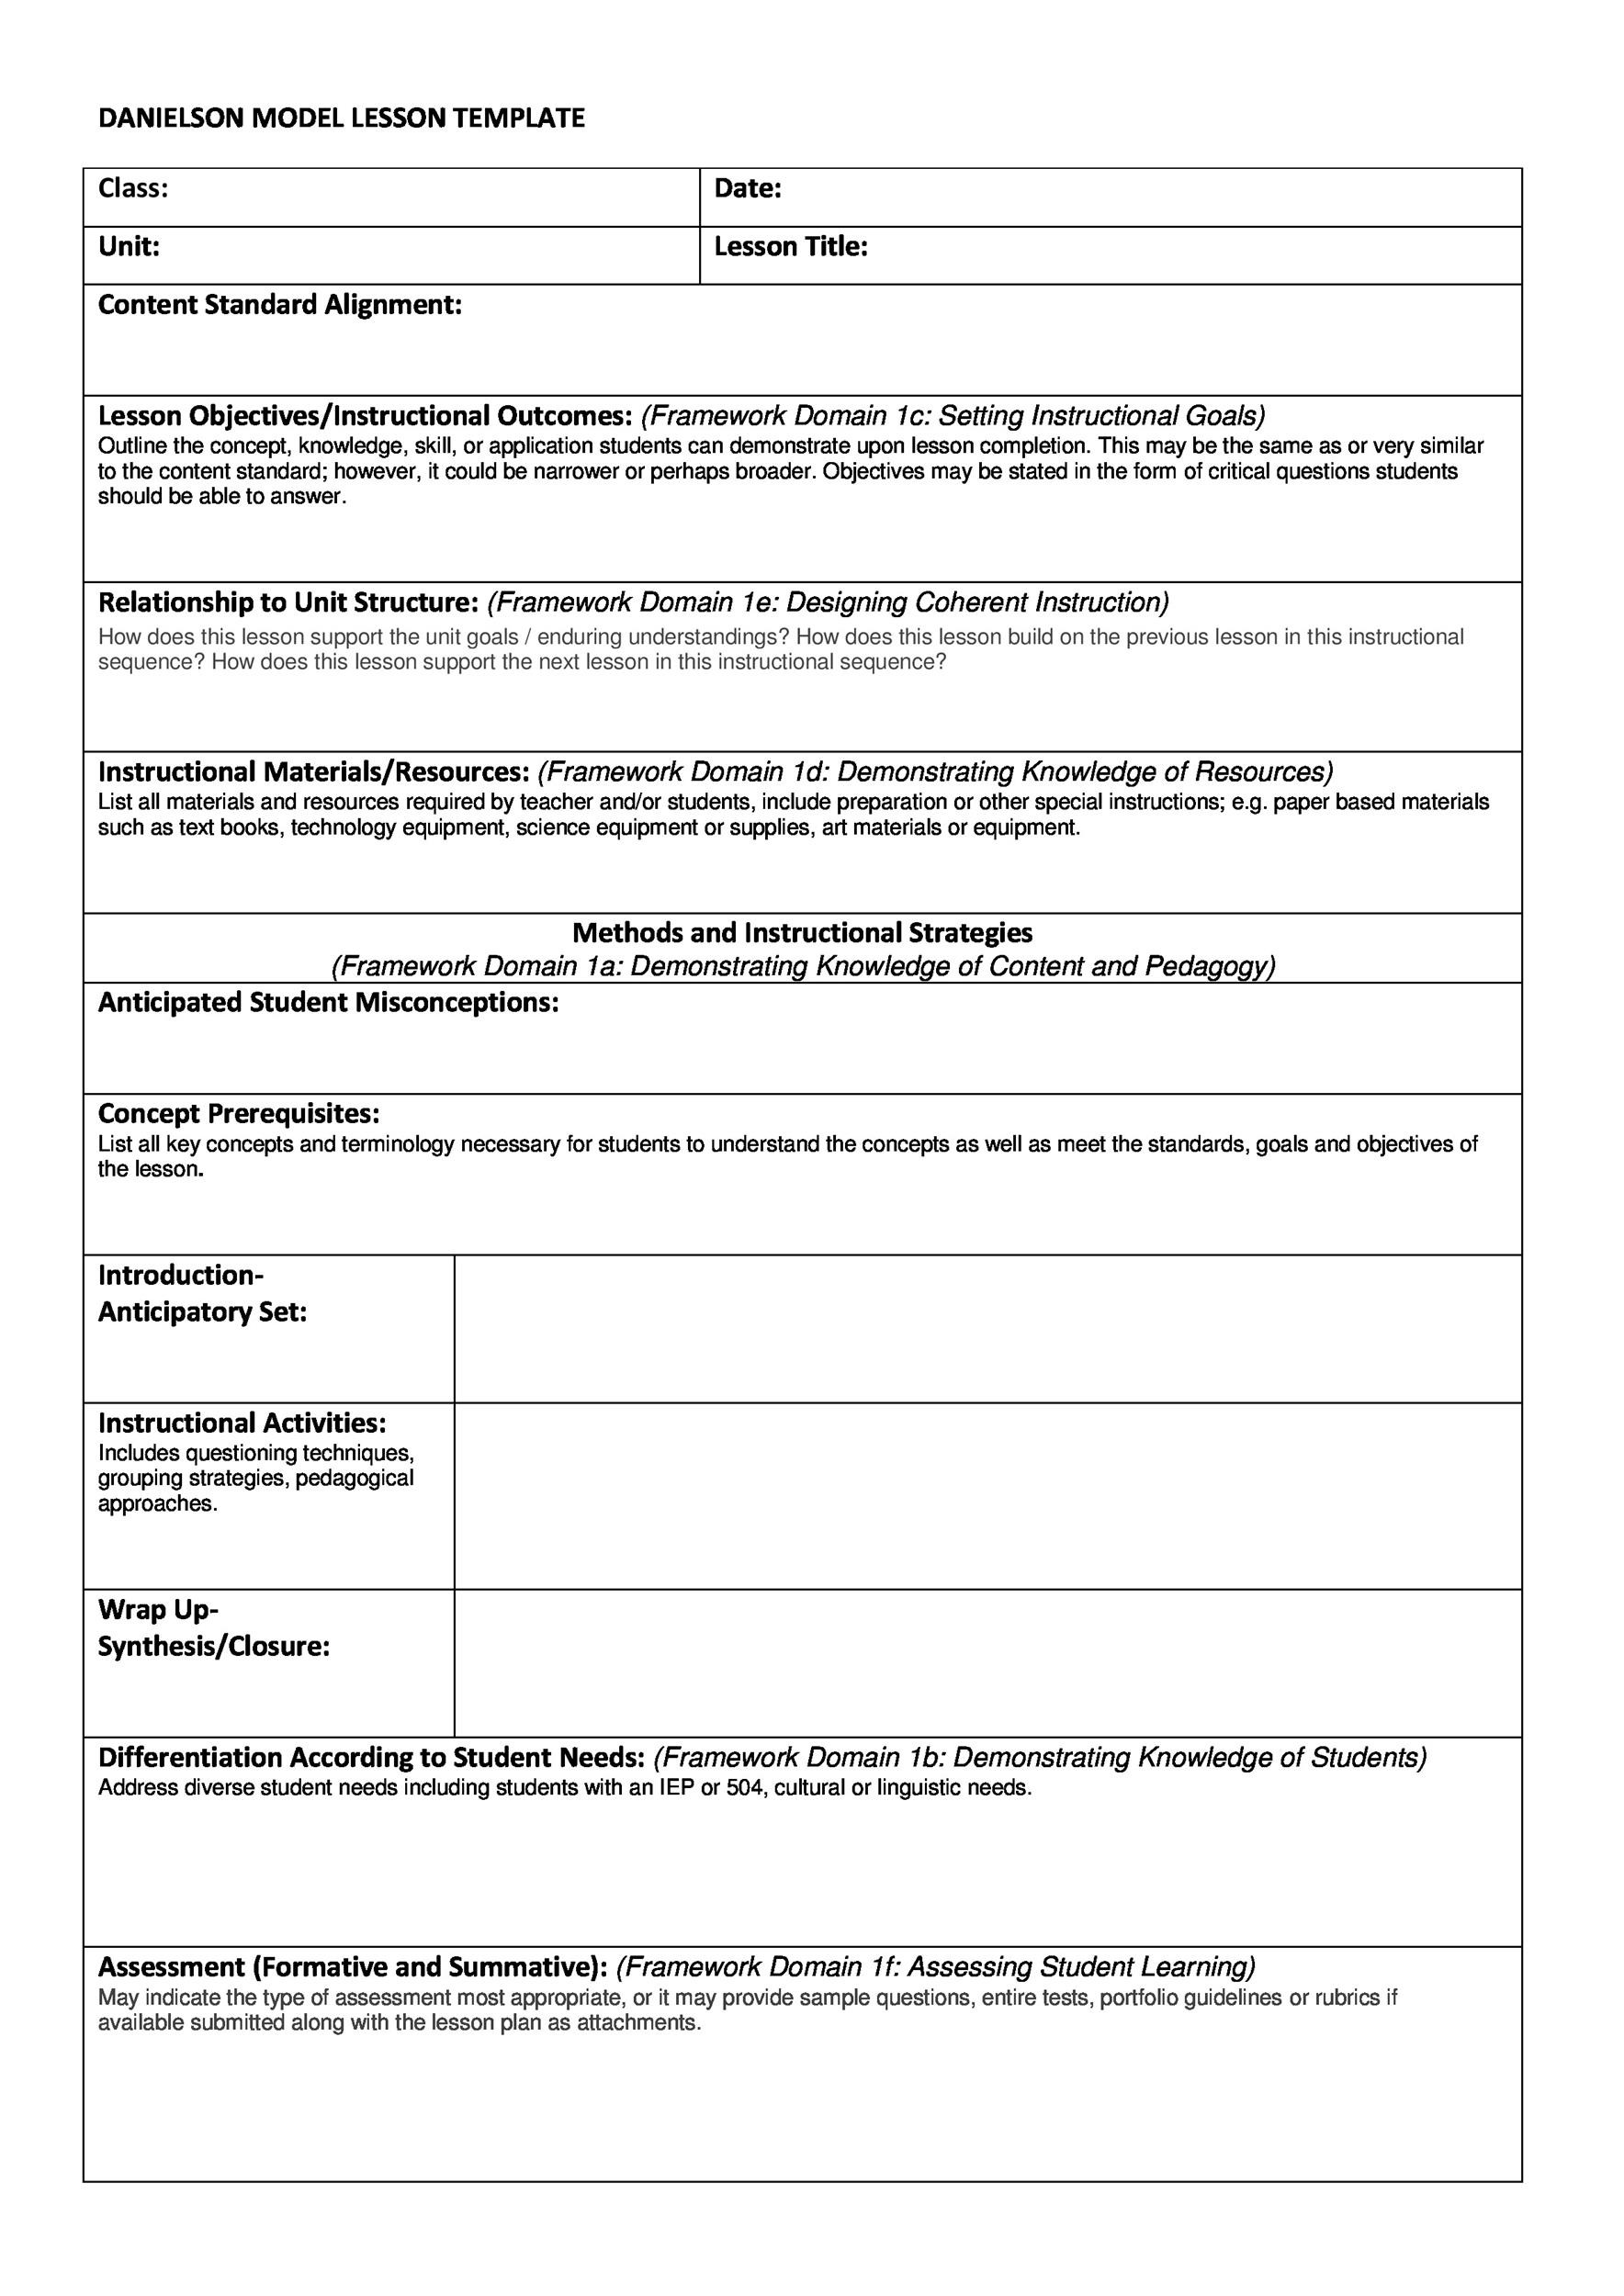 44 free lesson plan templates common core preschool weekly for Free lesson plan templates